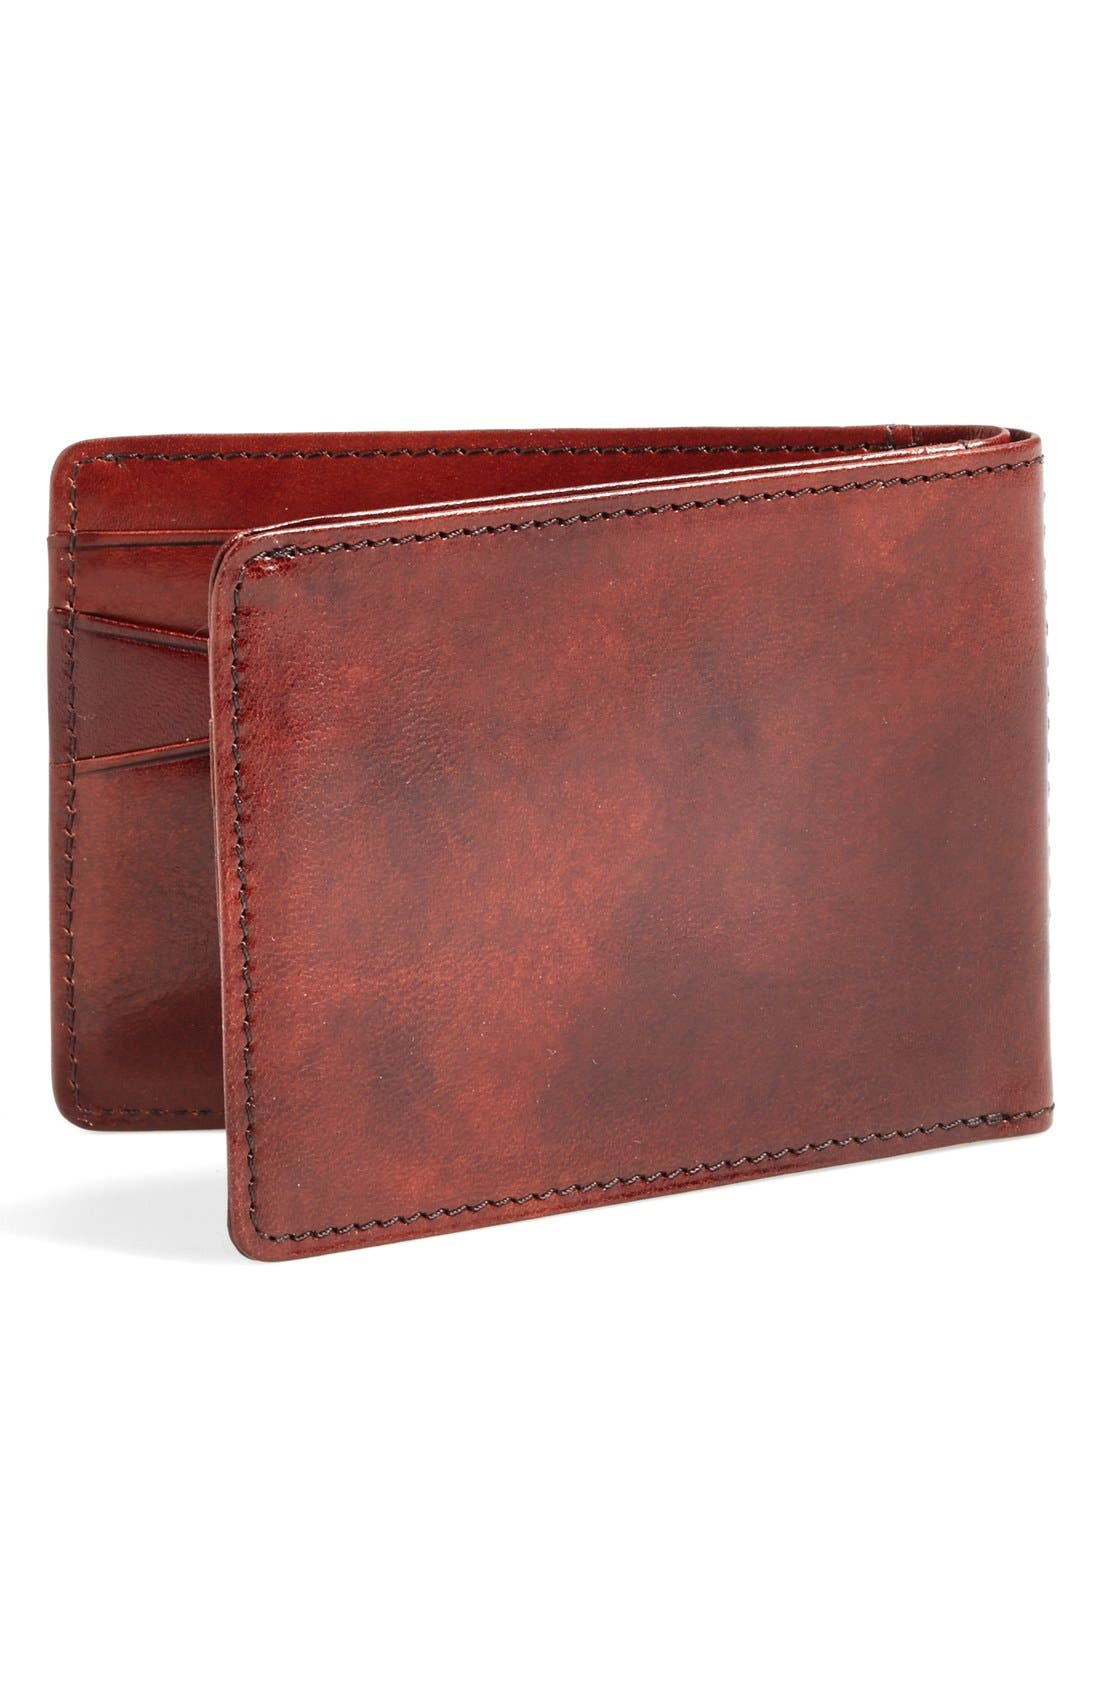 Small Bifold Wallet,                             Alternate thumbnail 10, color,